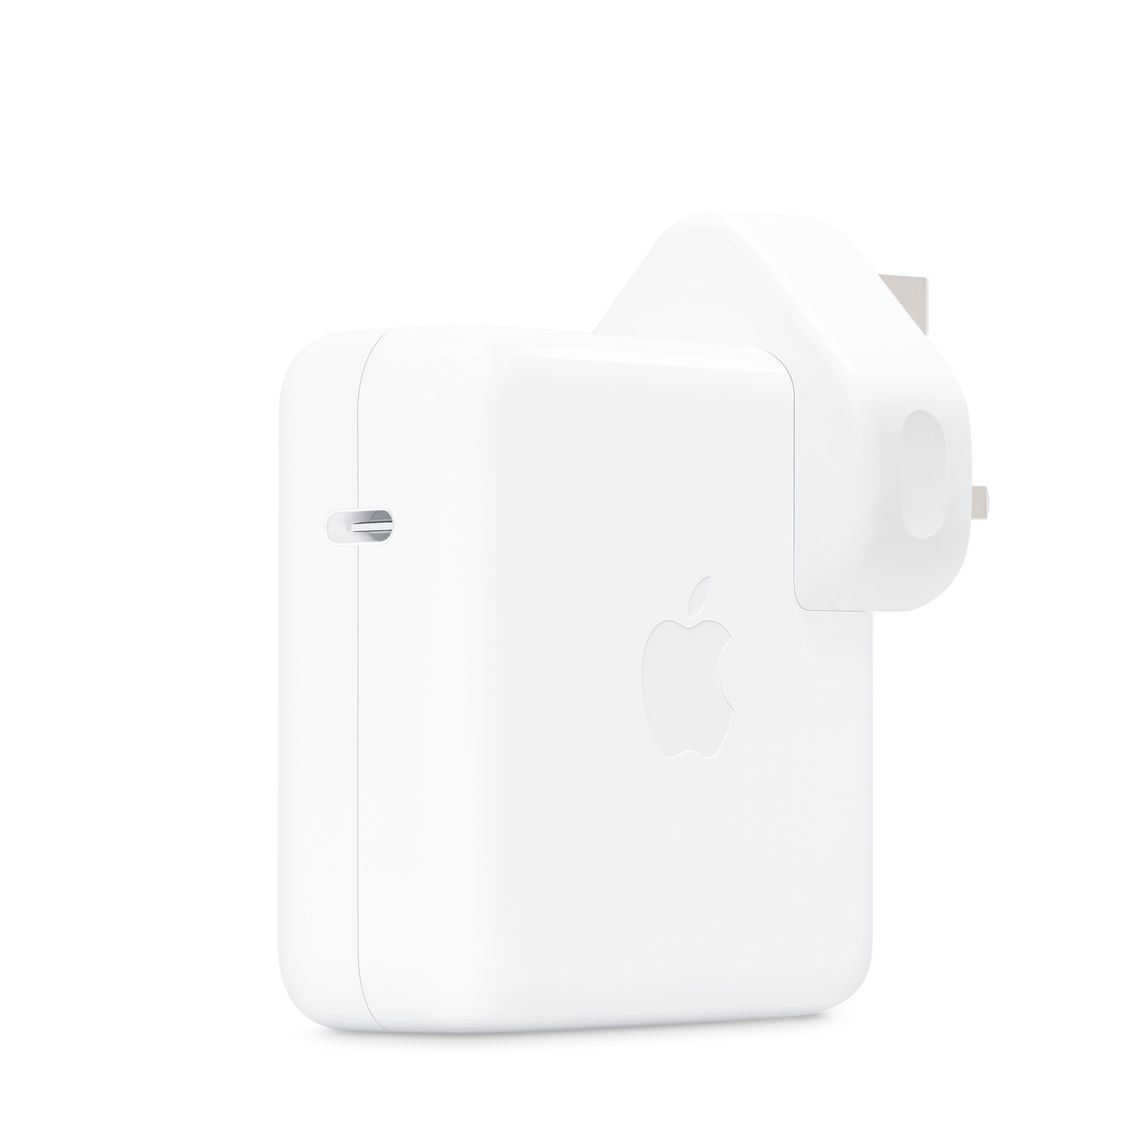 61W USB‑C Power Adapter - Apple (UK)